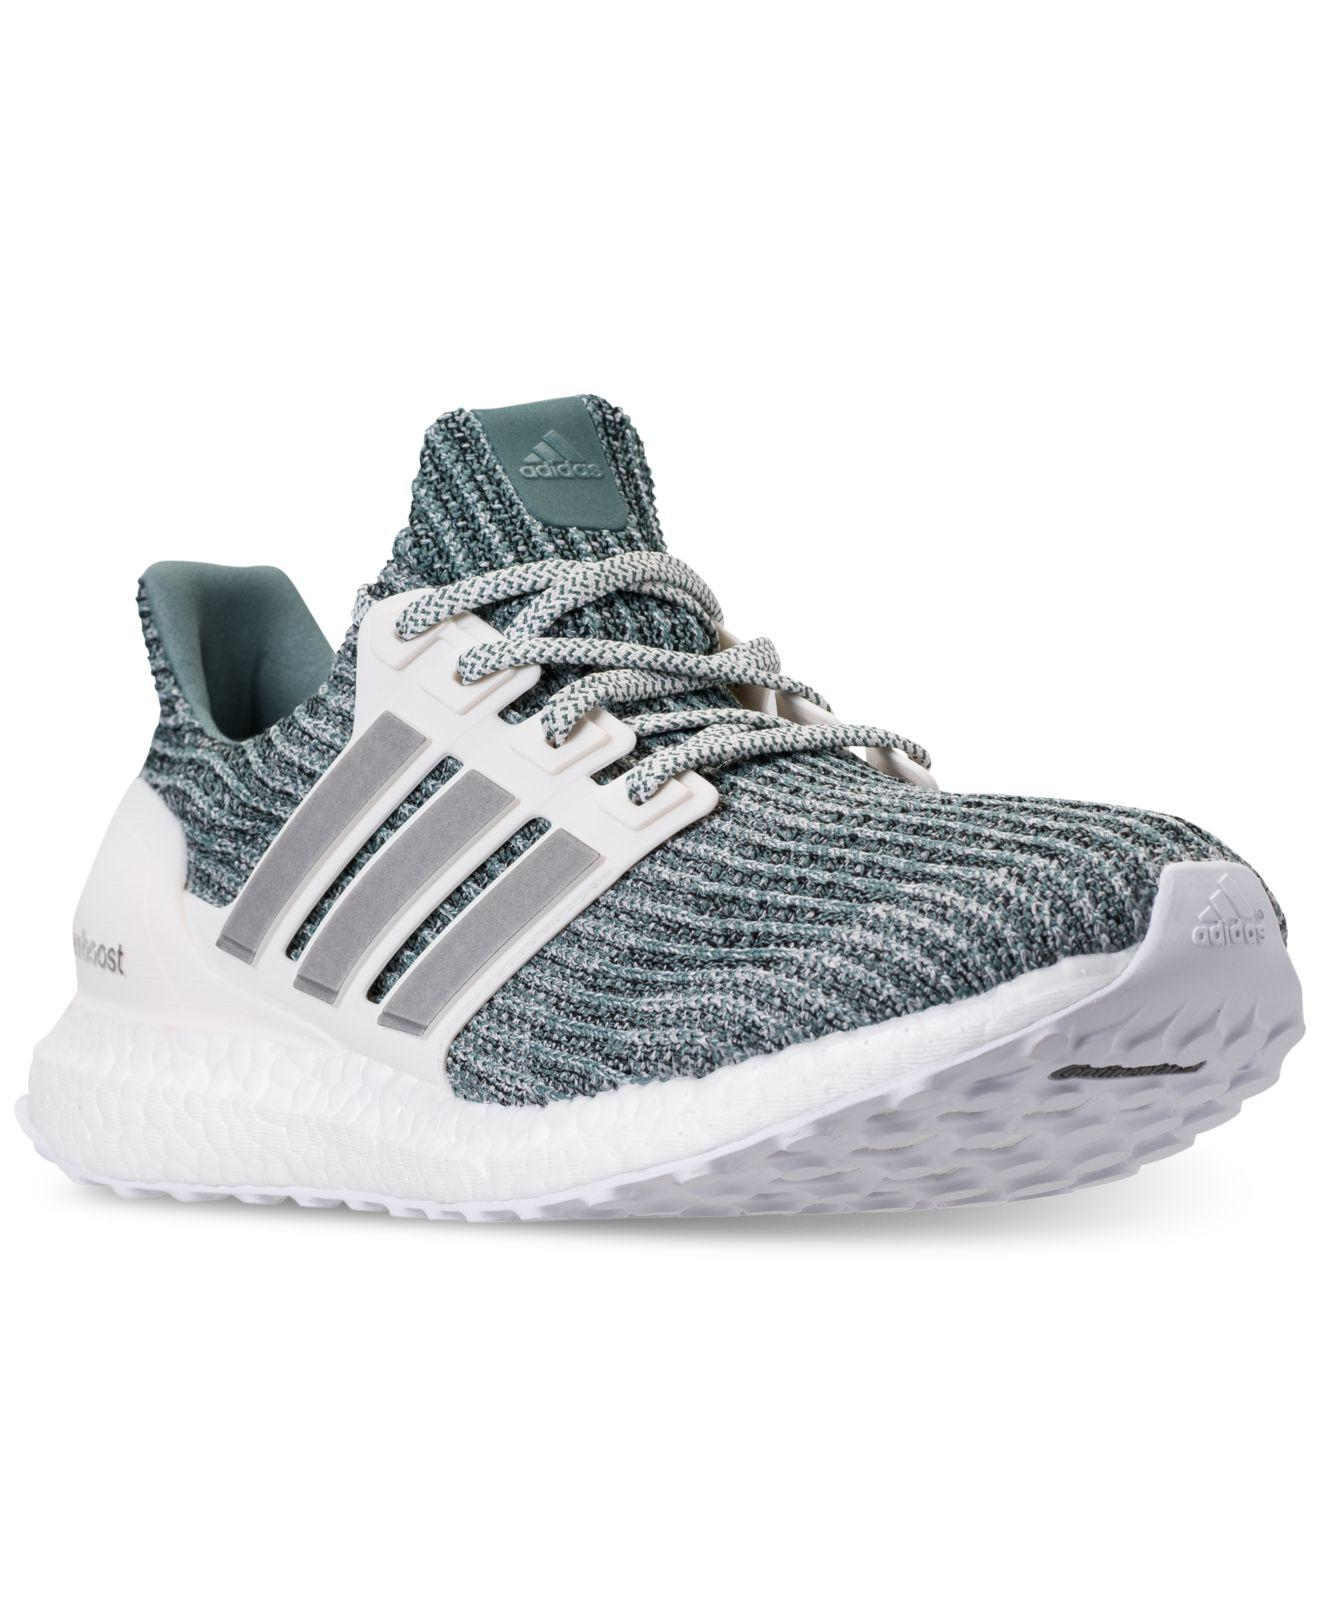 992f50baff74c ... discount code for adidas. mens ultraboost ltd running sneakers from finish  line 245aa 6b708